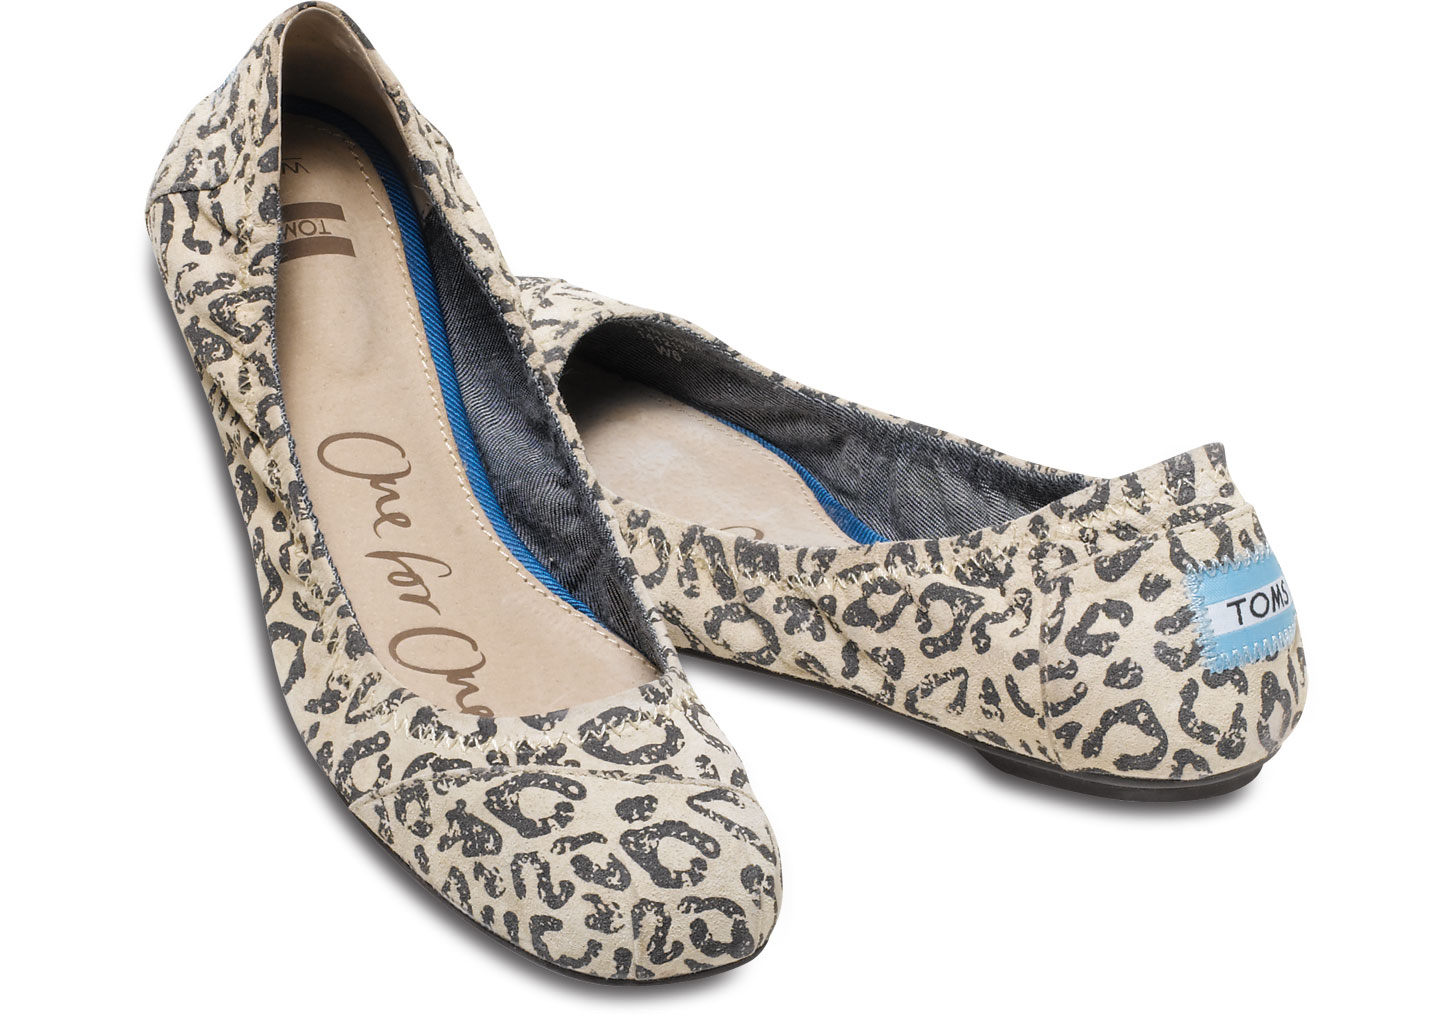 c1e027938 TOMS Brown Gisele Suede Women's Ballet Flats in Brown - Lyst